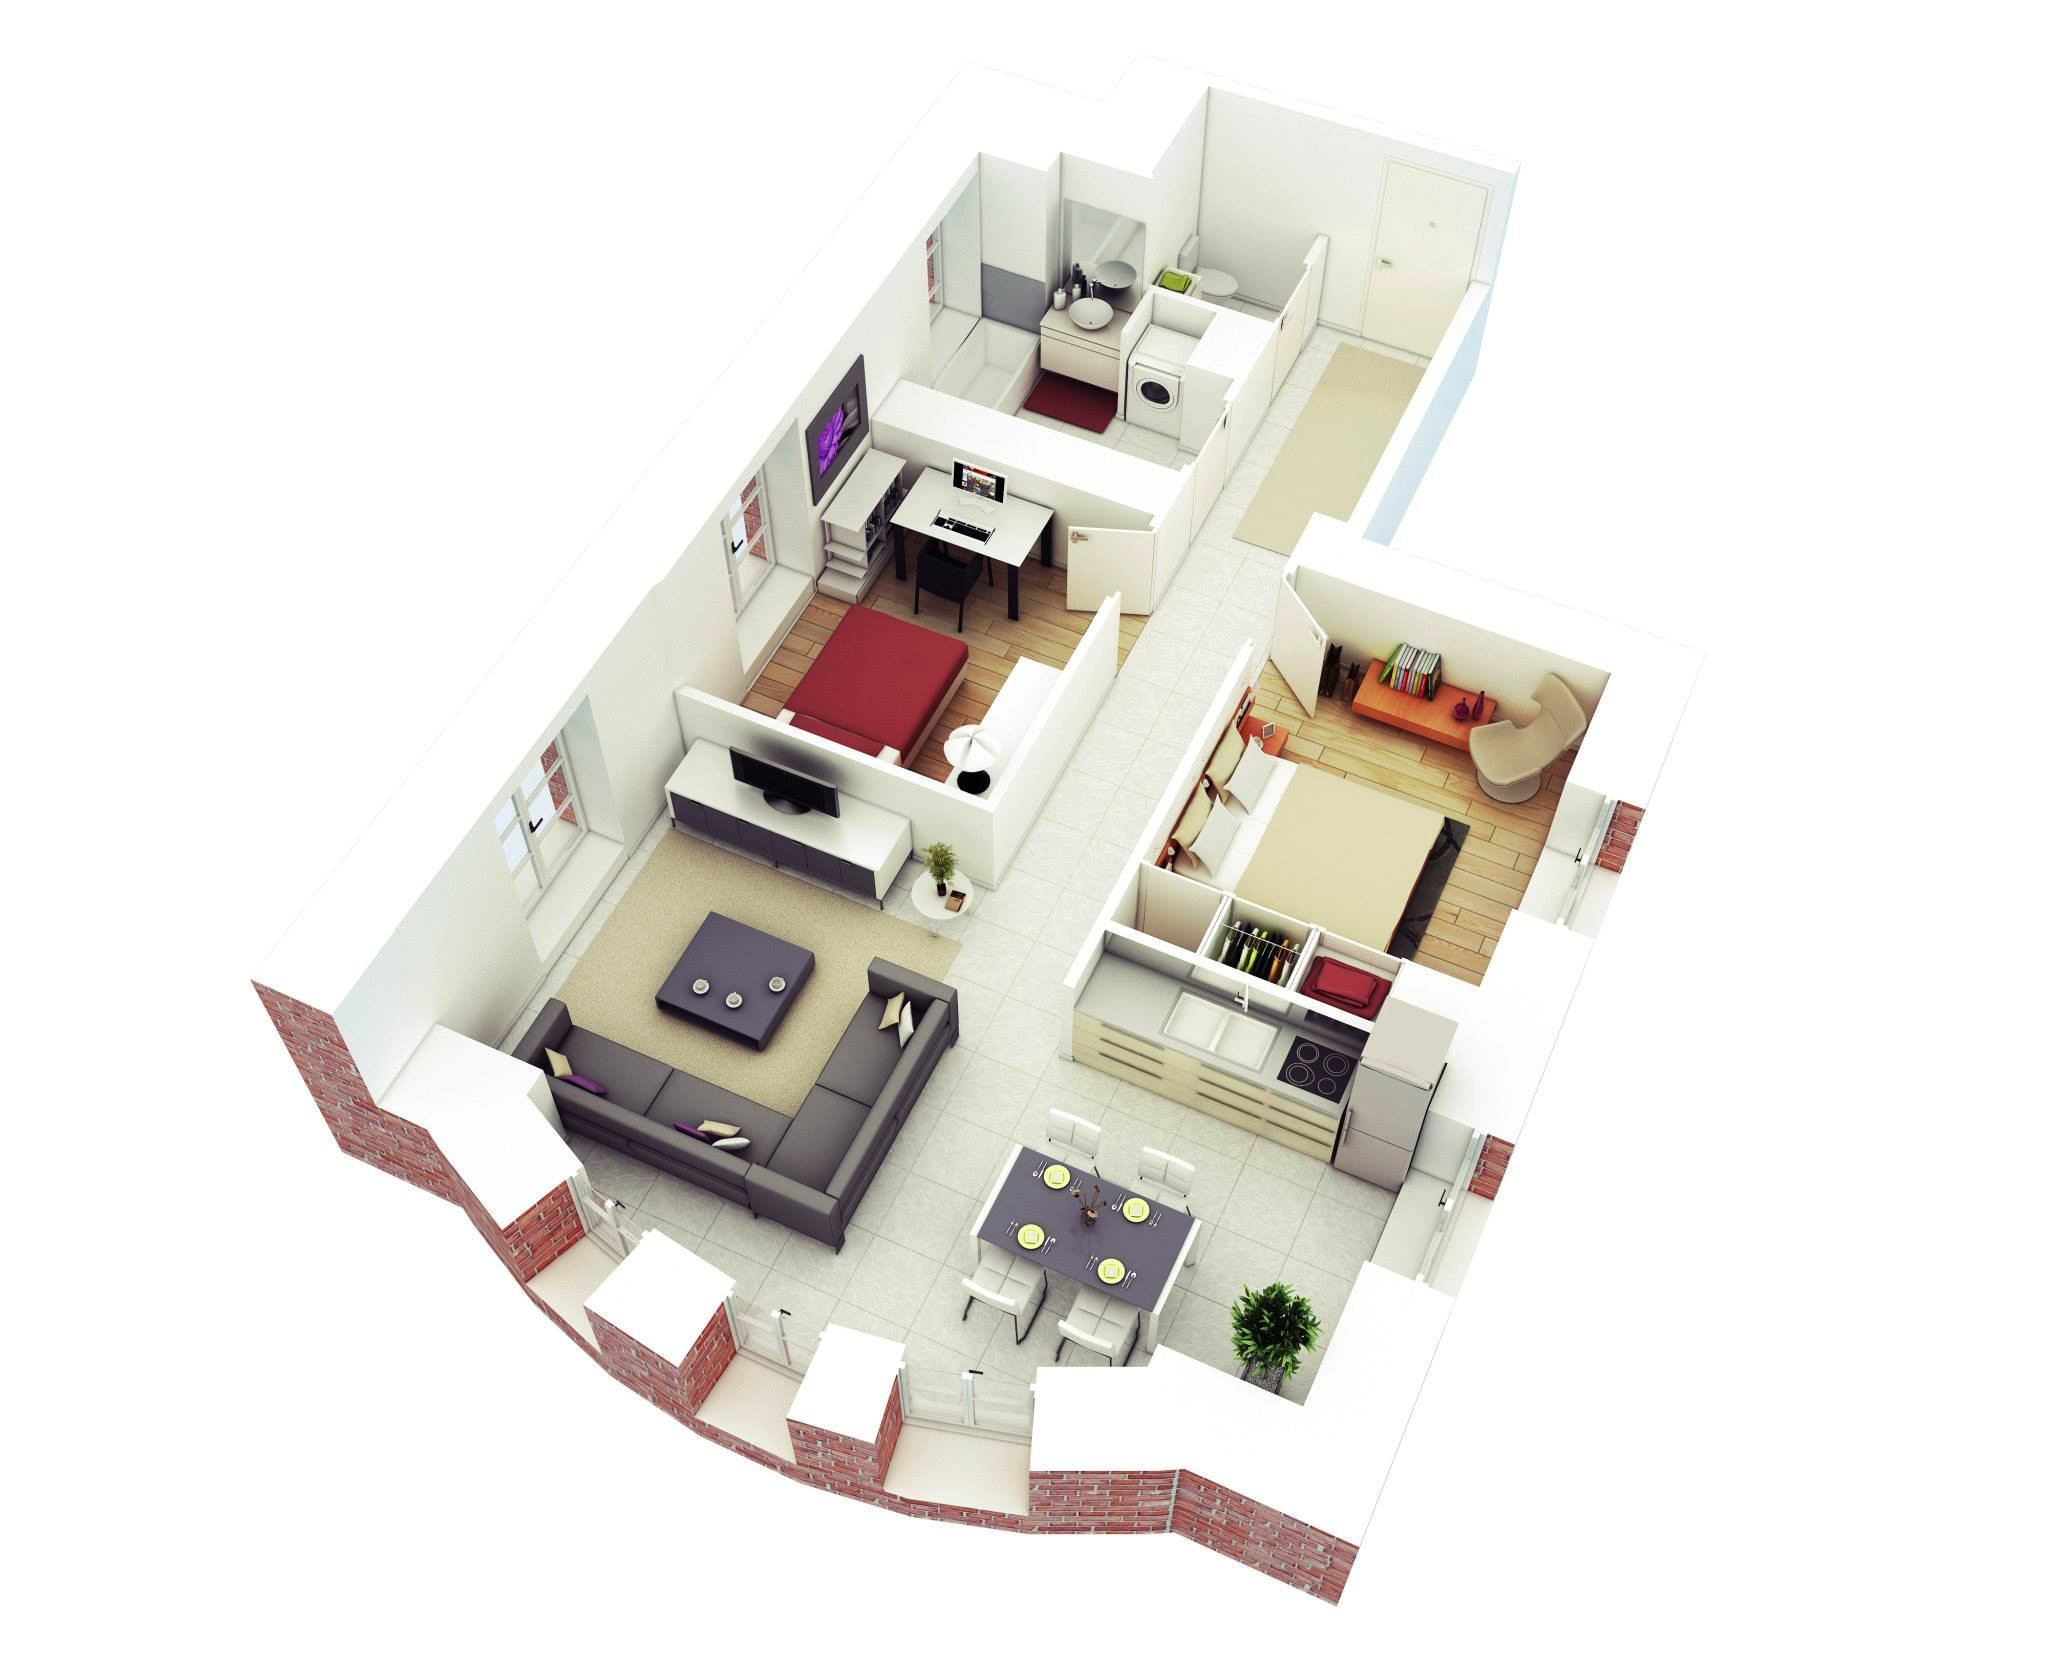 25 More 2 Bedroom 3D Floor Plans | House plans with ...